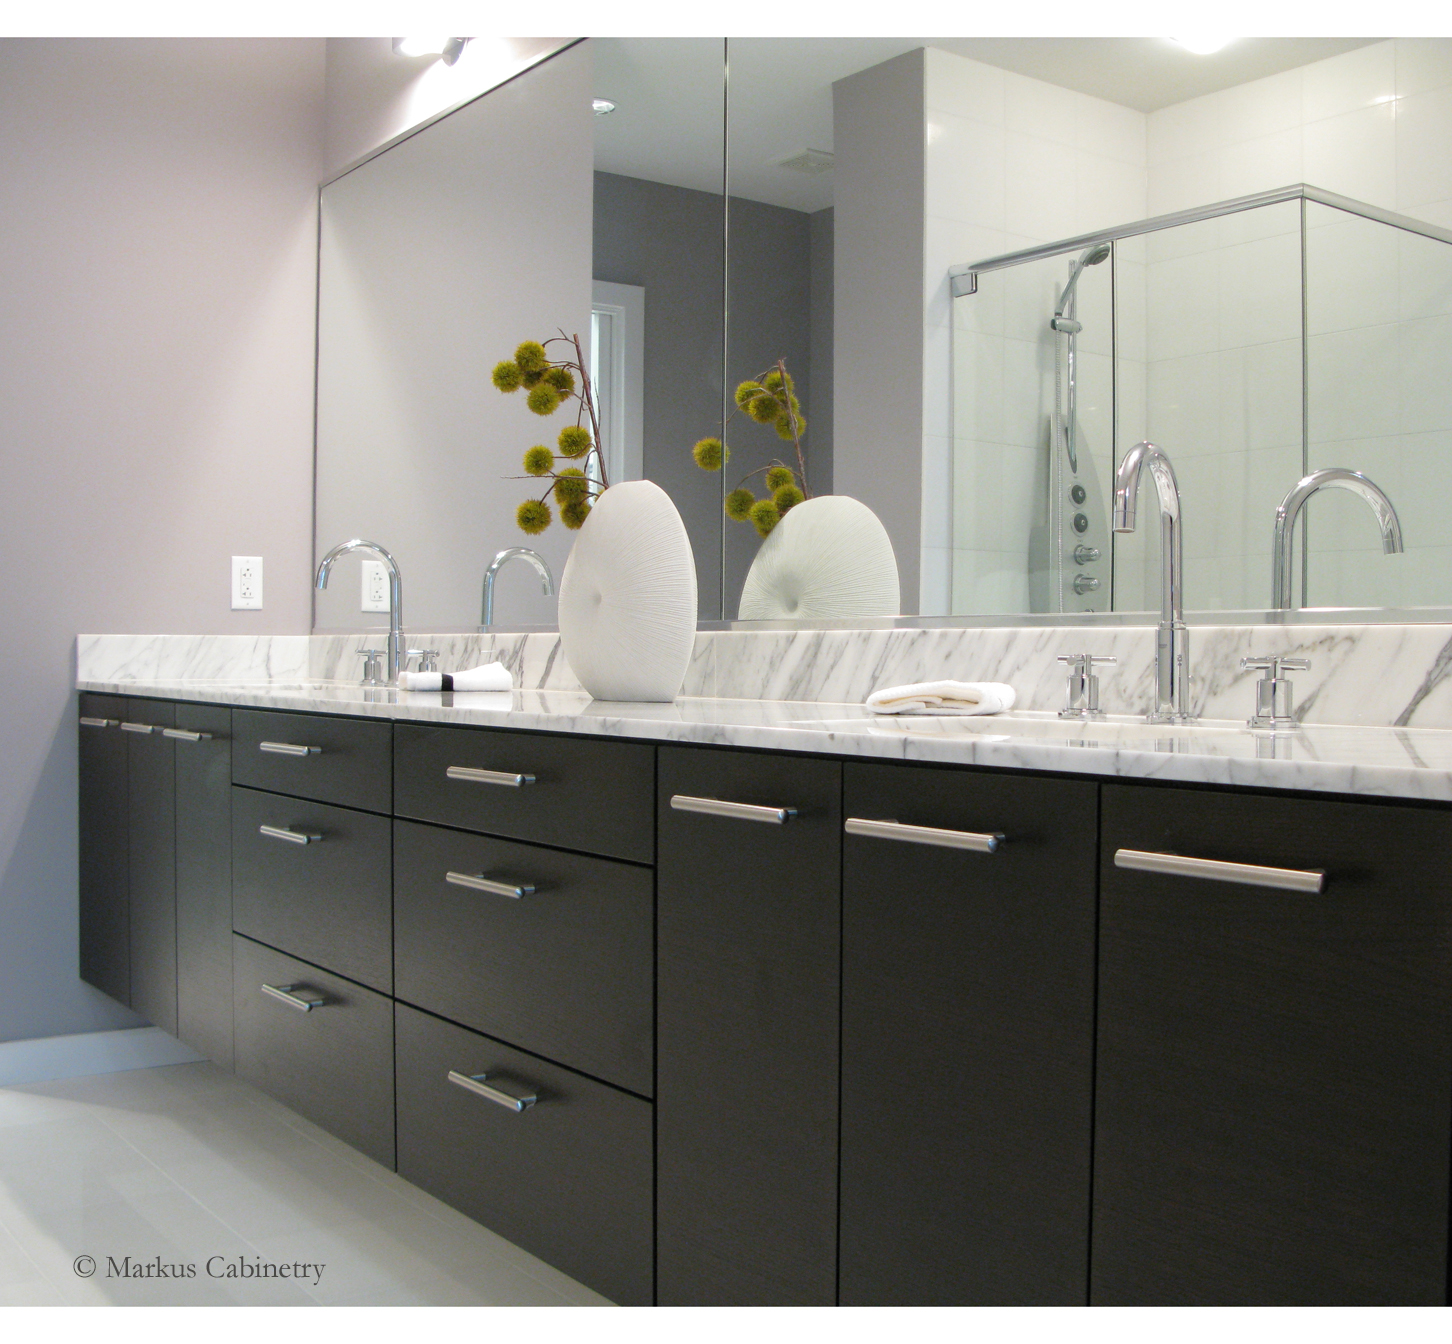 cabinet zachary lux kitchen contemporary horne homes cabinets